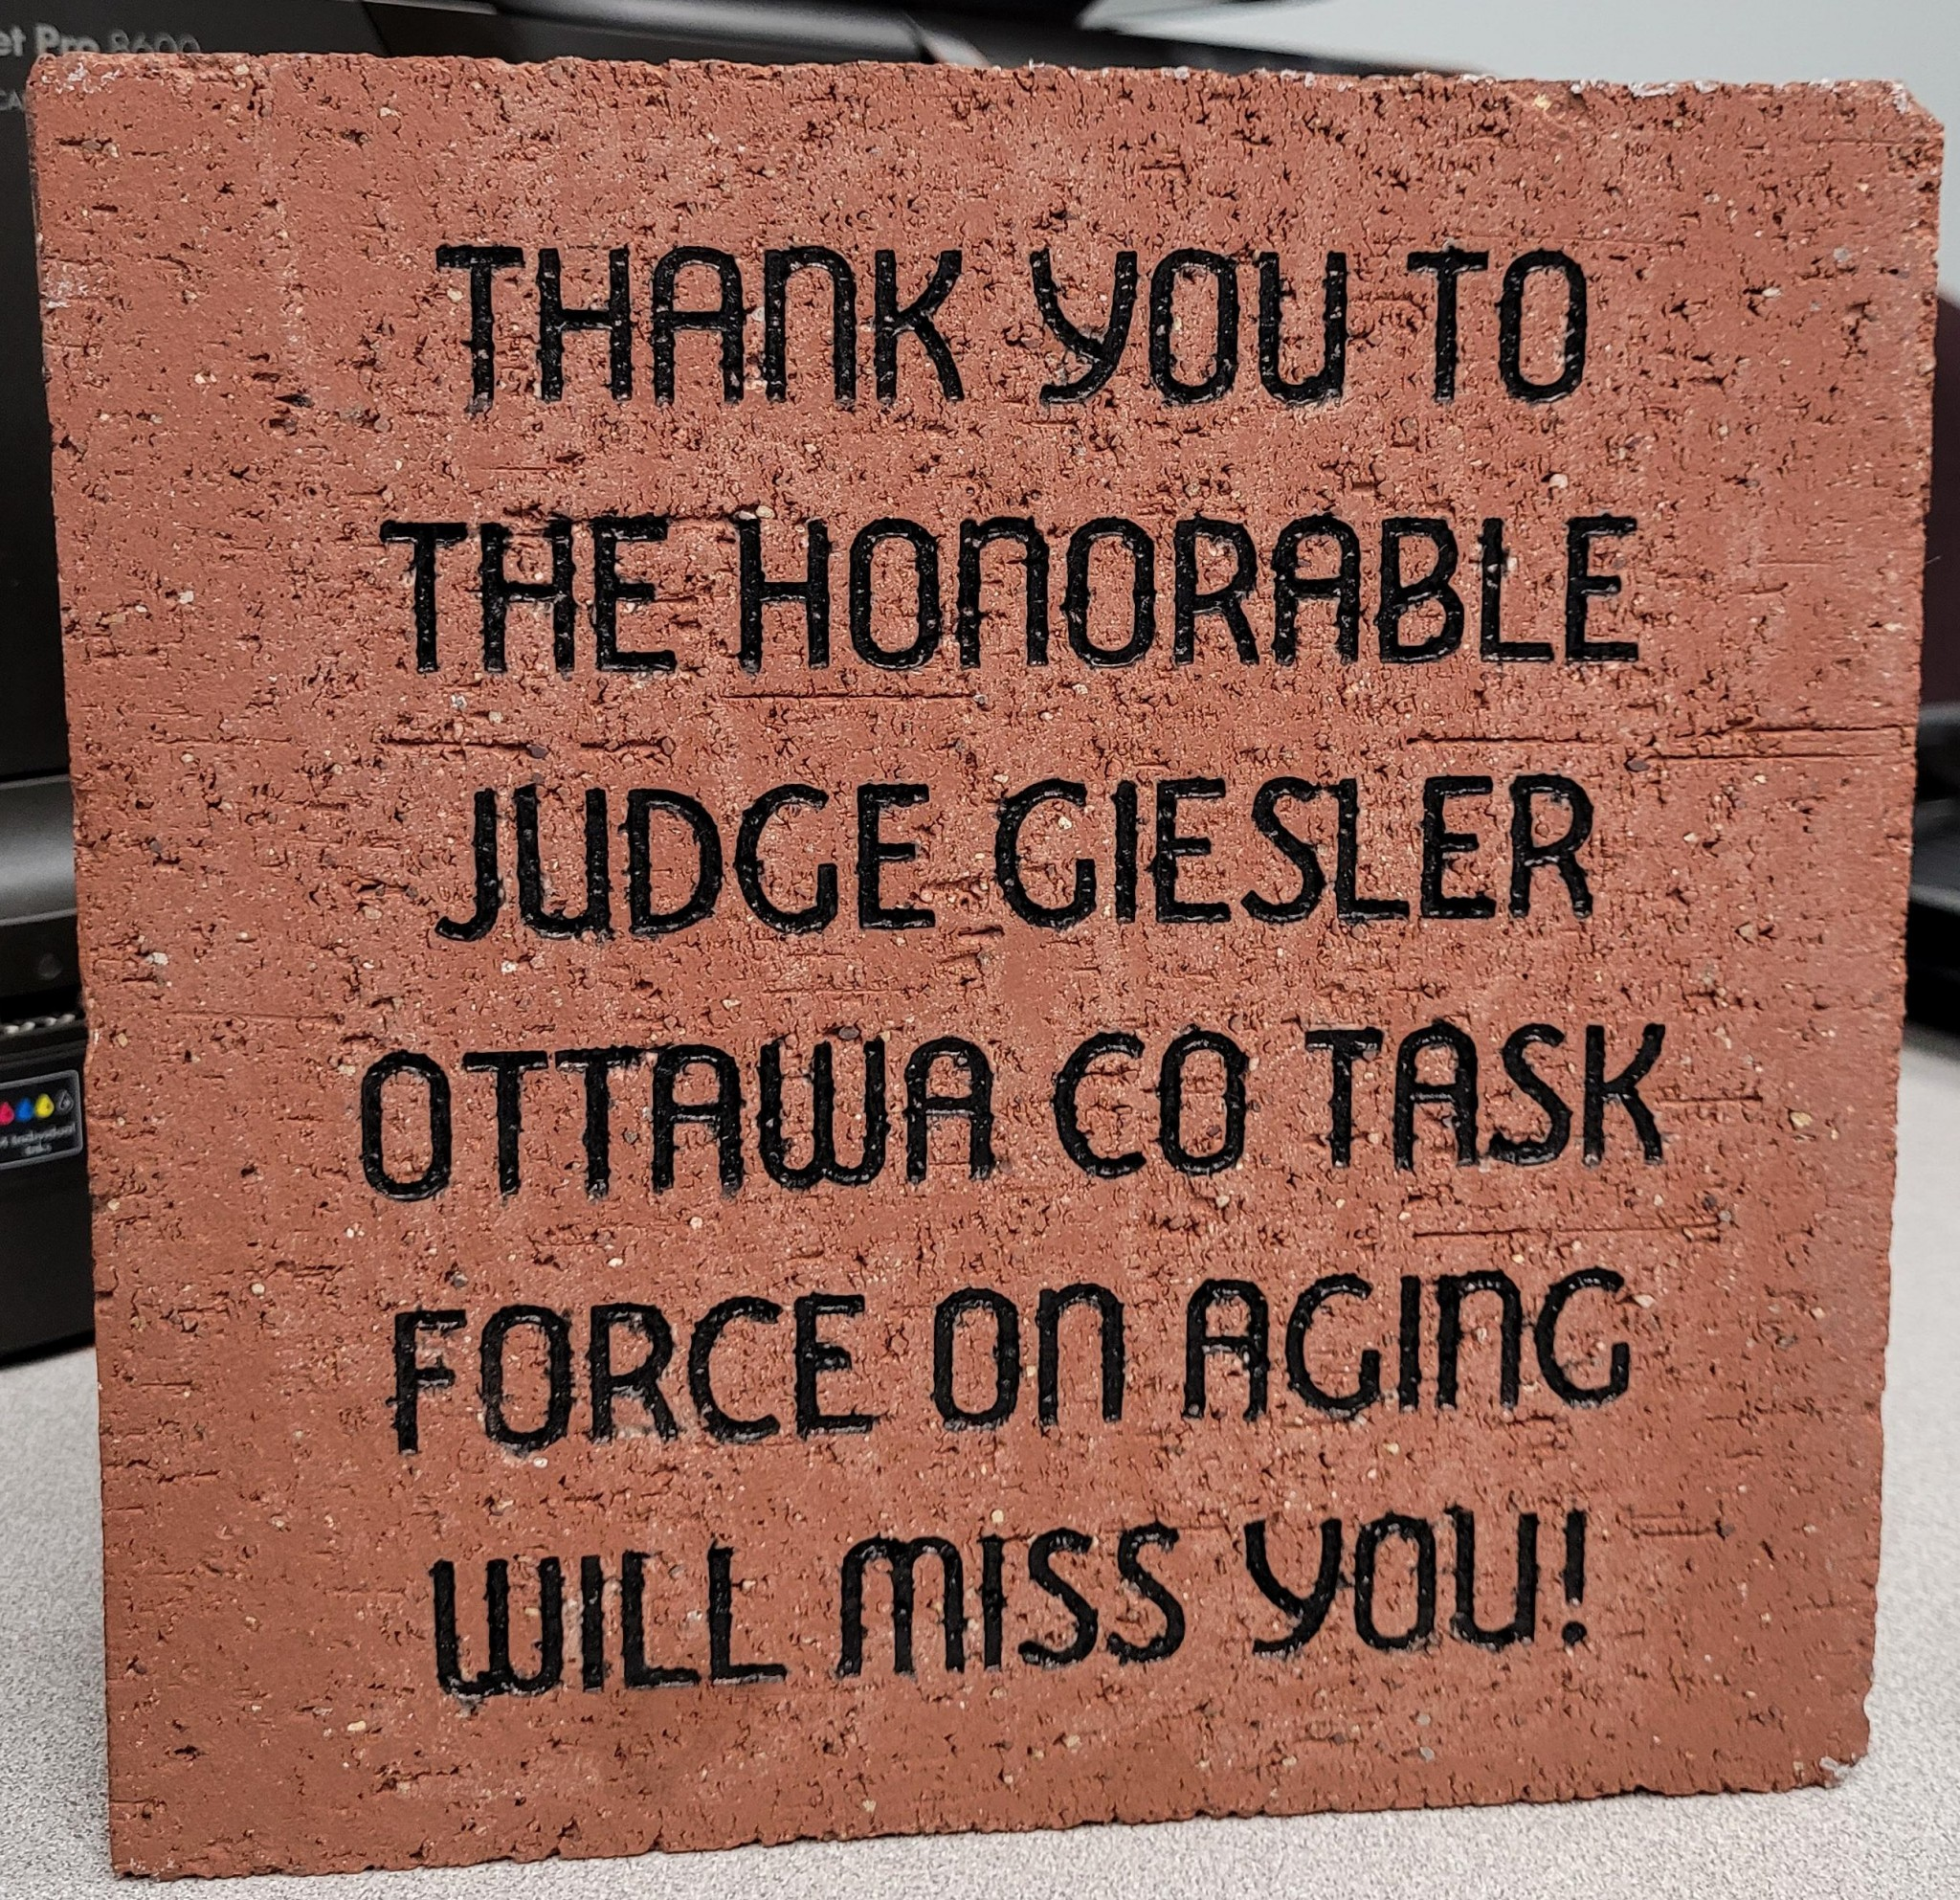 """Ottawa County Task Force on Aging honored Ottawa County Juvenile/Probate Judge Kathleen Giesler for her leadership in developing the organization by presenting her with a paver, to be set at the county fairgrounds. The paver says, """"We will miss you!"""" since Judge Giesler is retiring Feb 8. (Submitted photo)"""